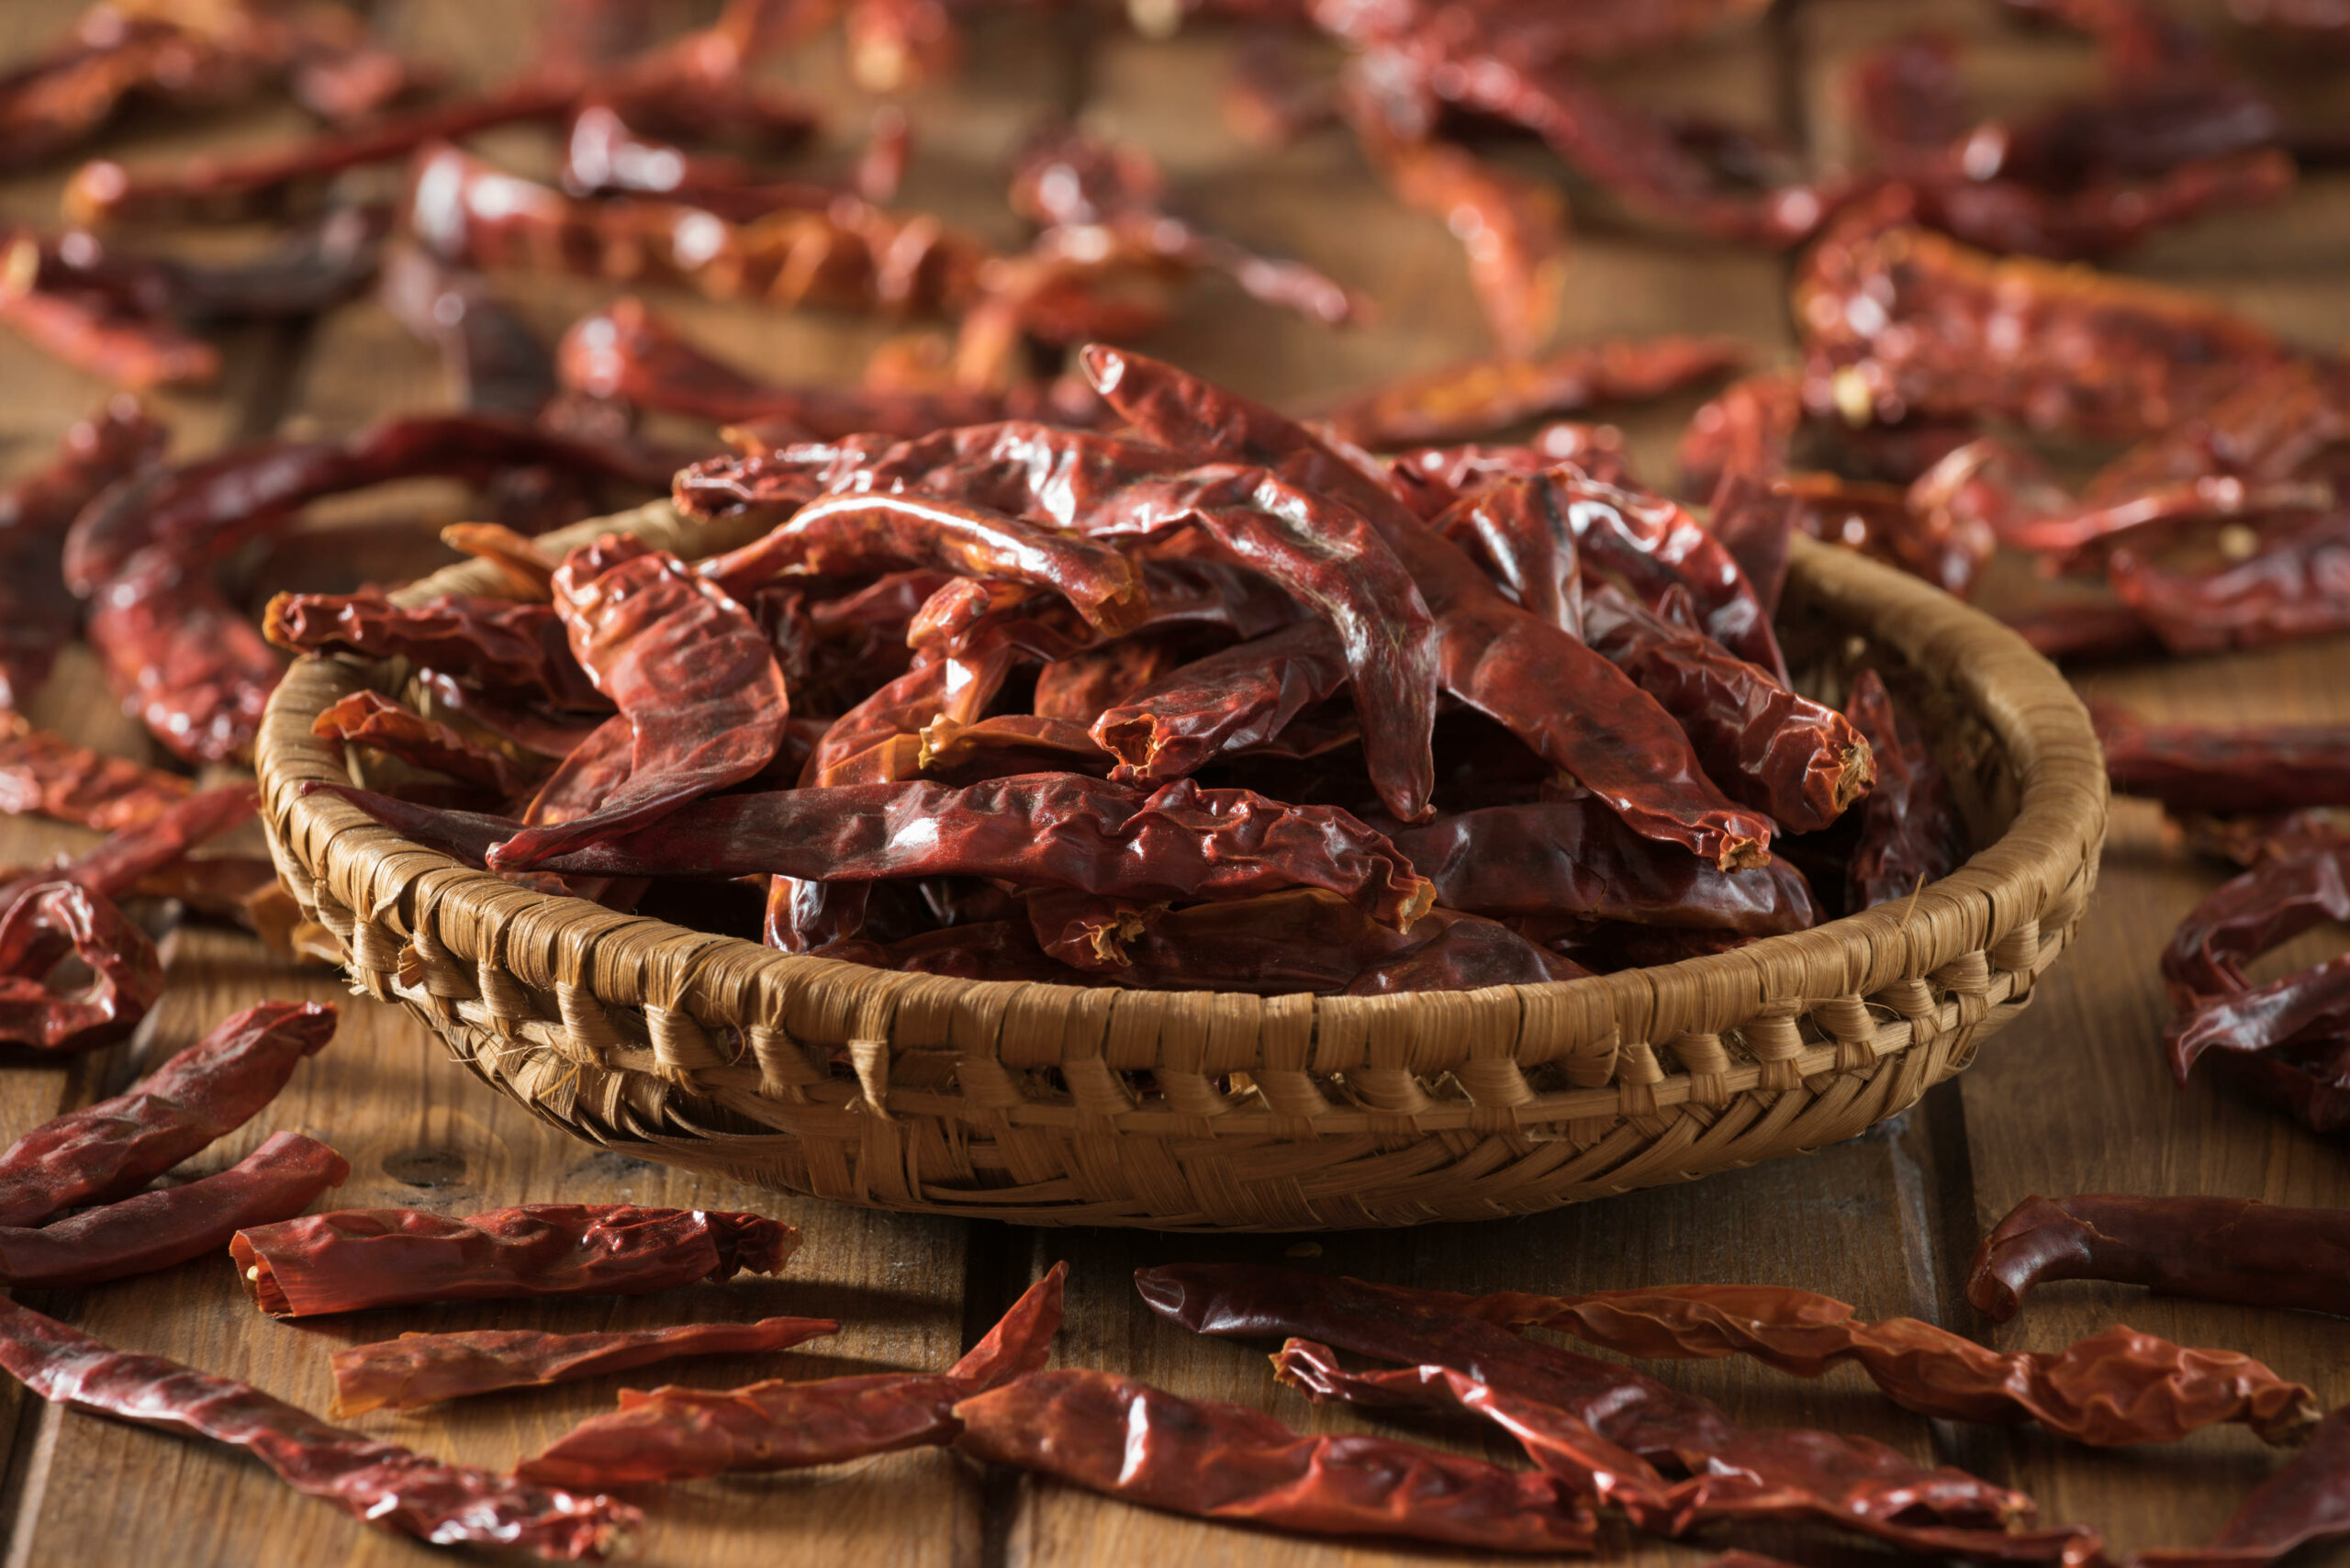 Dried chillies food make you hallucinate